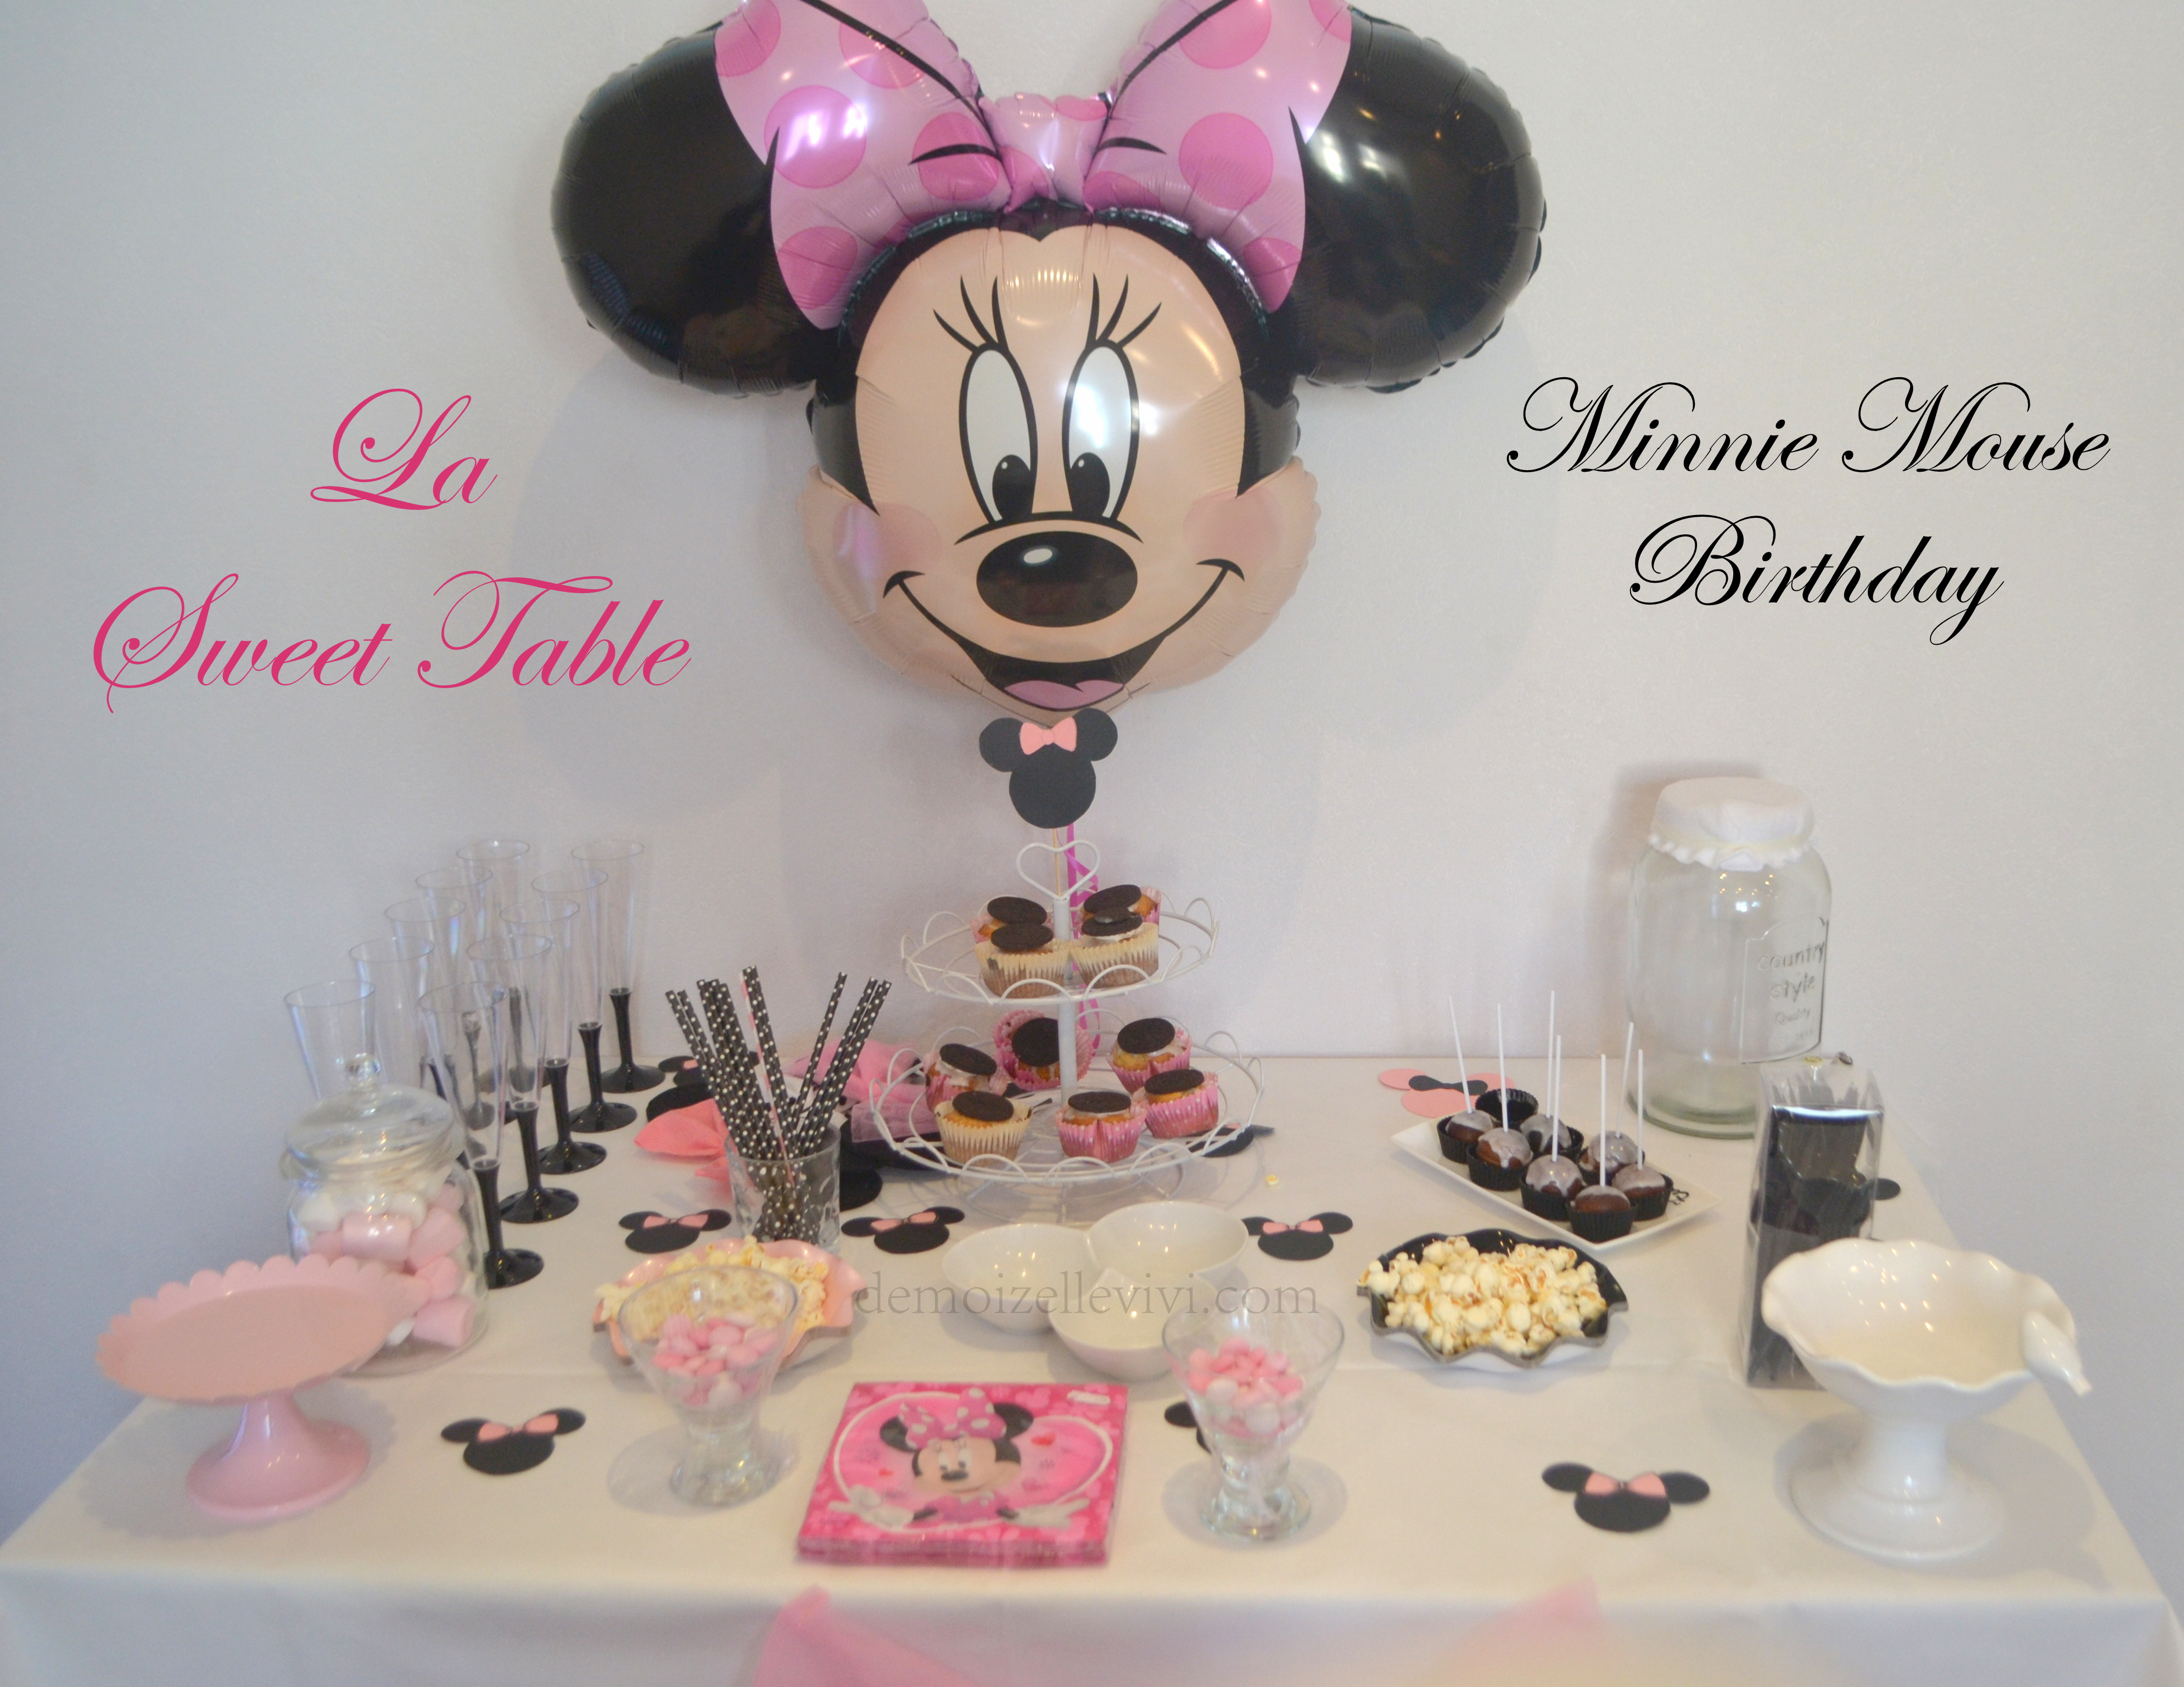 le minnie birthday de mady 2 le g teau d anniversaire la sweet table et le photobooth. Black Bedroom Furniture Sets. Home Design Ideas